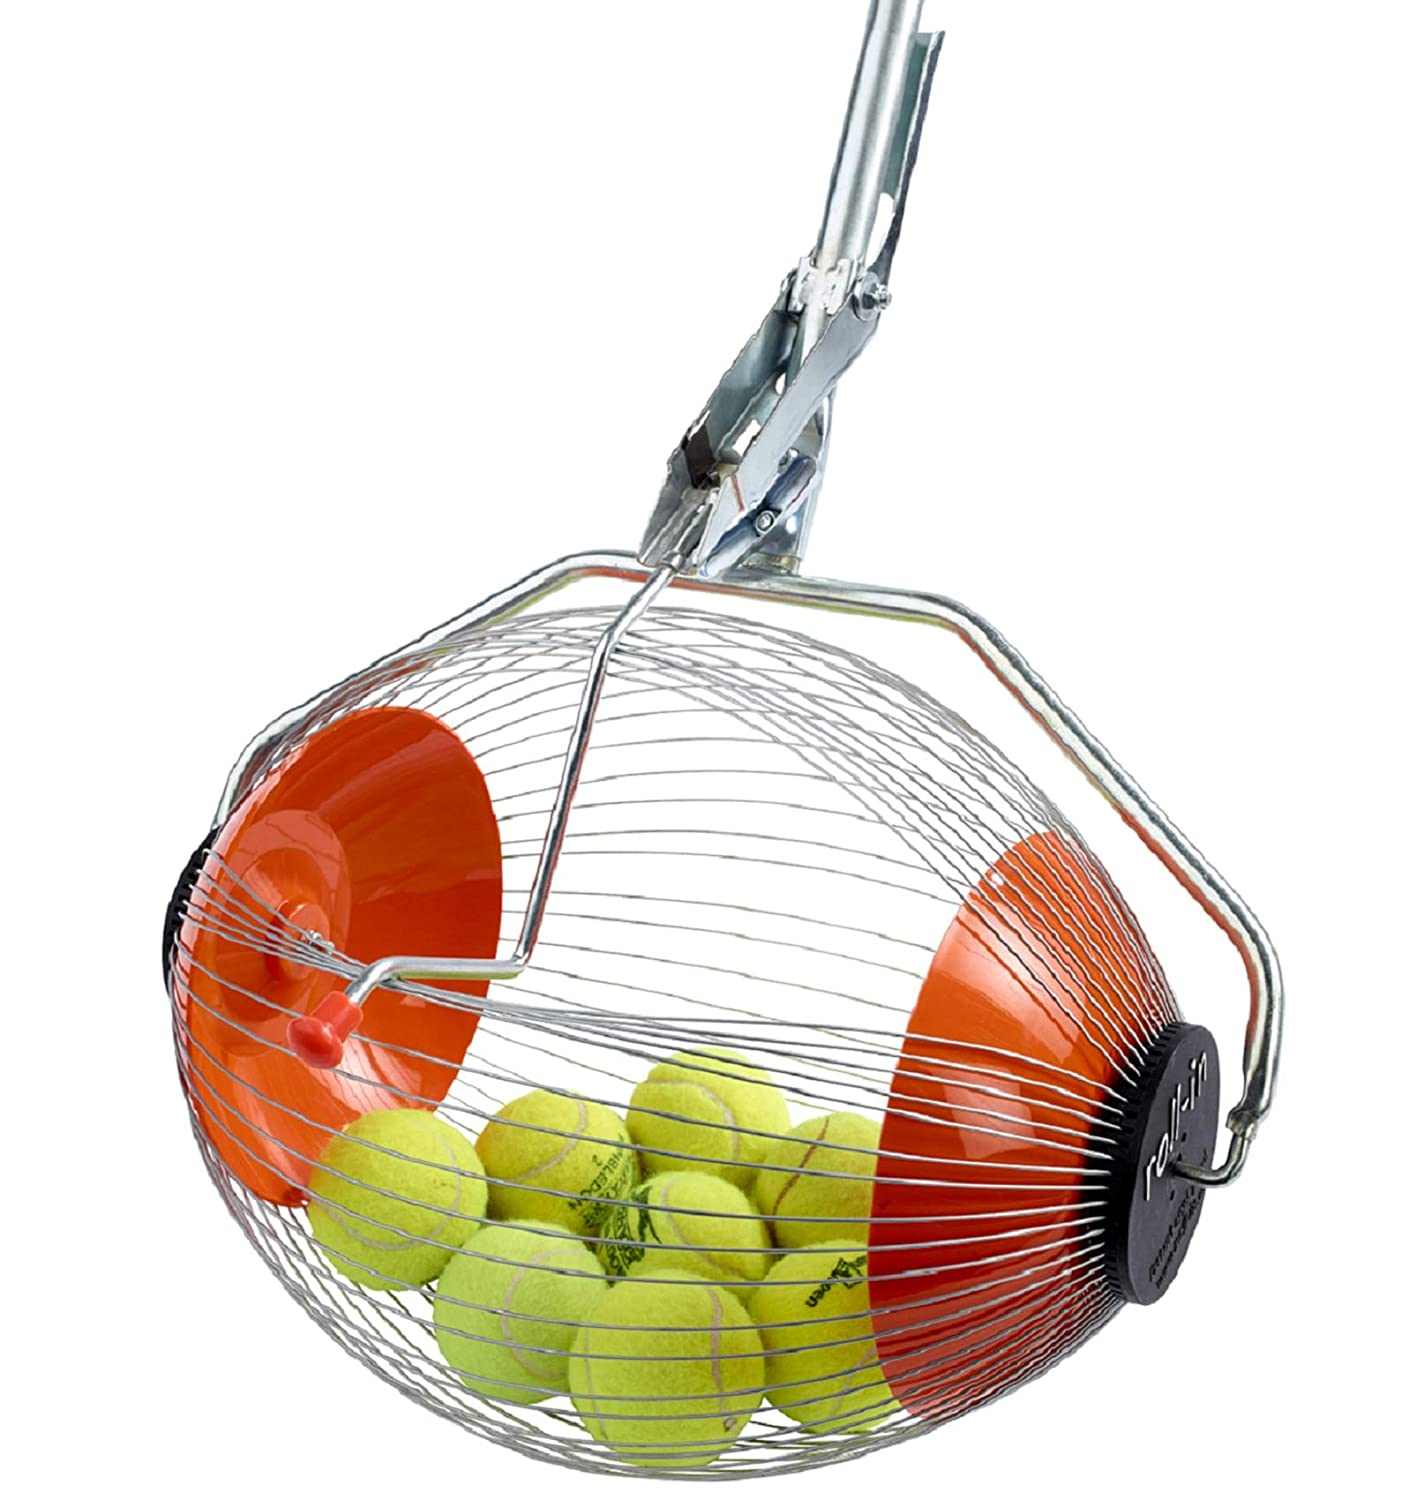 Kollectaball Max - Recogepelotas tenis | 60 Pelotas: Amazon ...